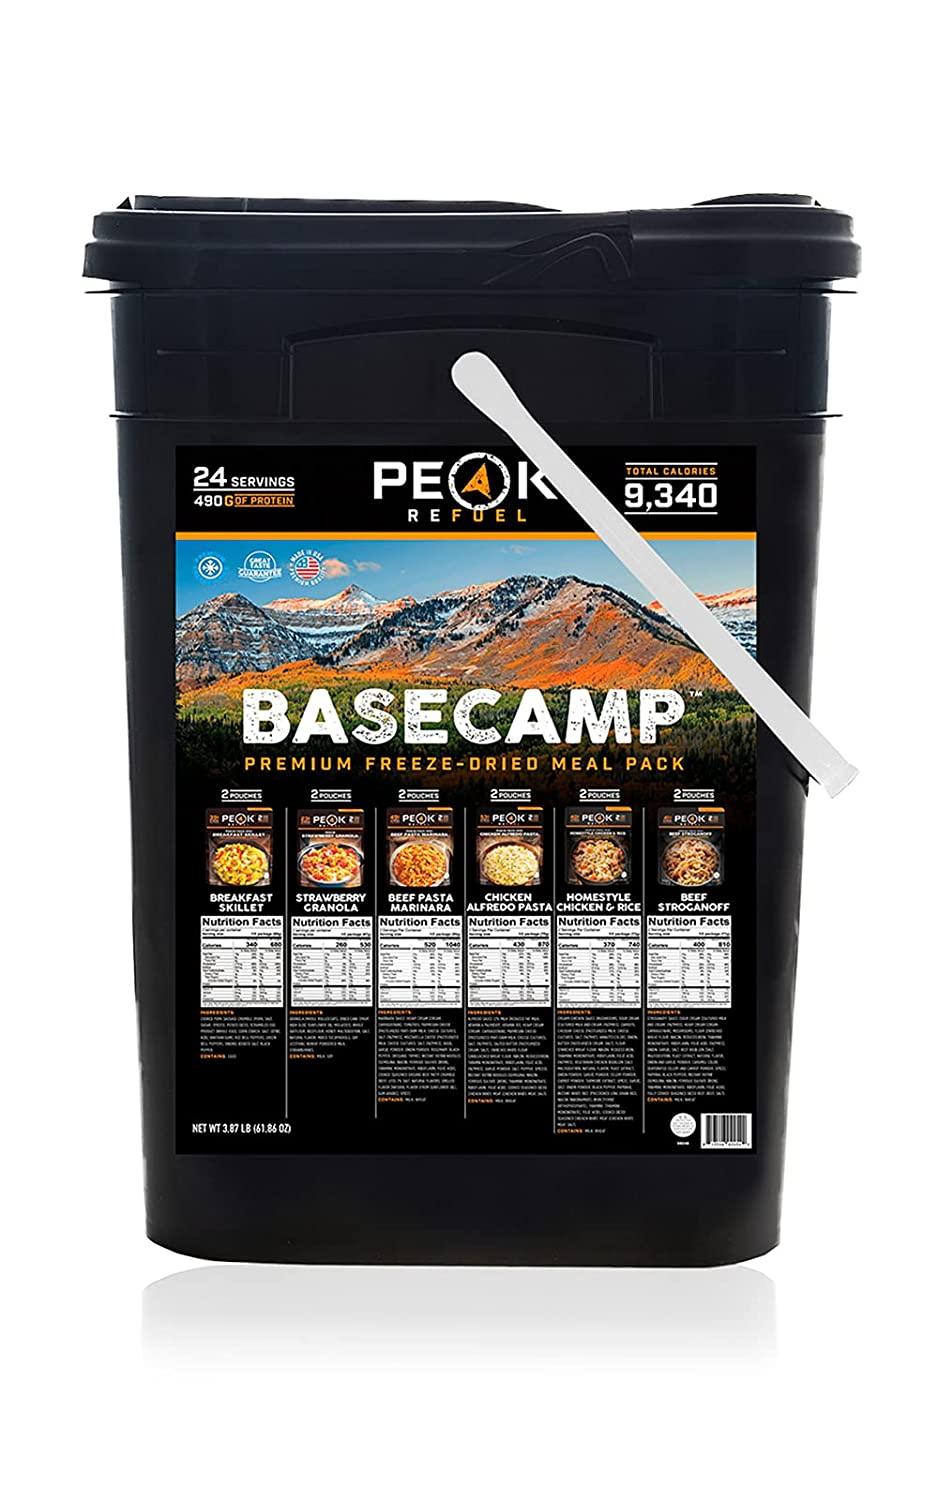 Peak Refuel Basecamp Bucket | Premium Freeze Dried Variety Meal Pack | Backpacking and Camping Food | 100% Real Meat | High Protein and Calories | MRE | 24 Servings